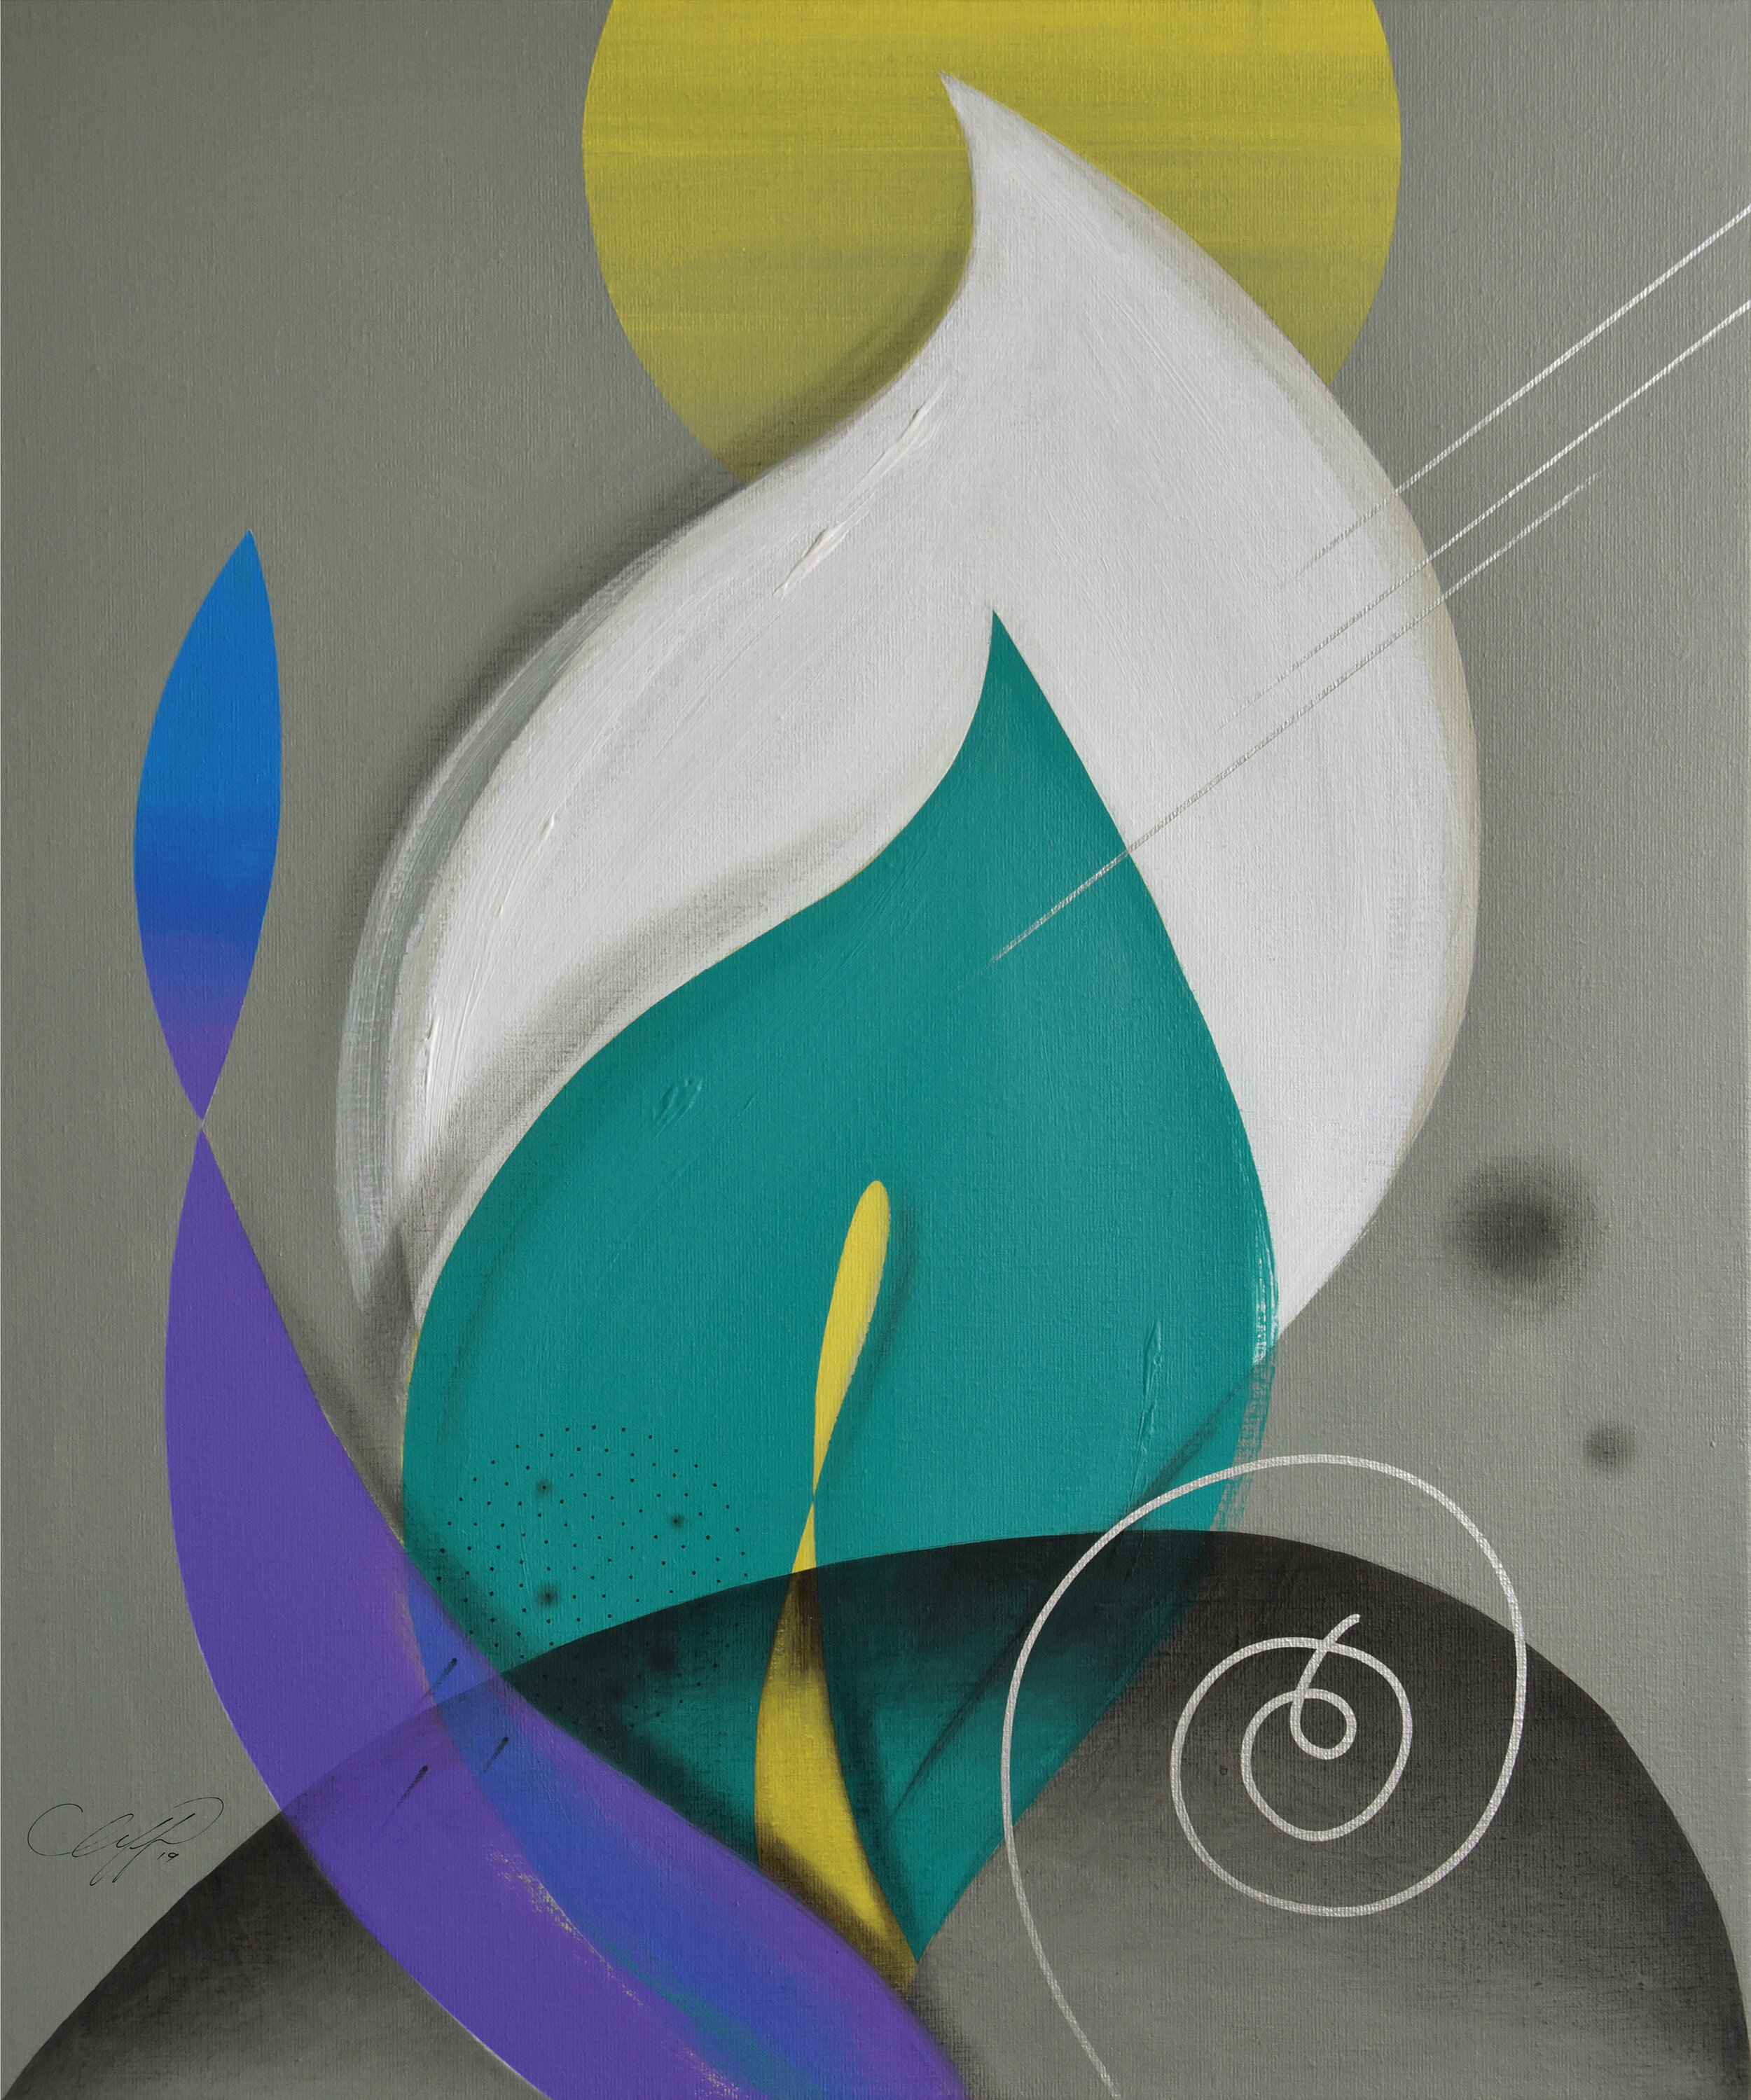 """The Beginning of Life No.73, 2019, Acrylic, Charcoal on Canvas, 28""""x24""""  Abstract painting with simplified organic shapes in green, purple, black, white, yellow on gray background"""